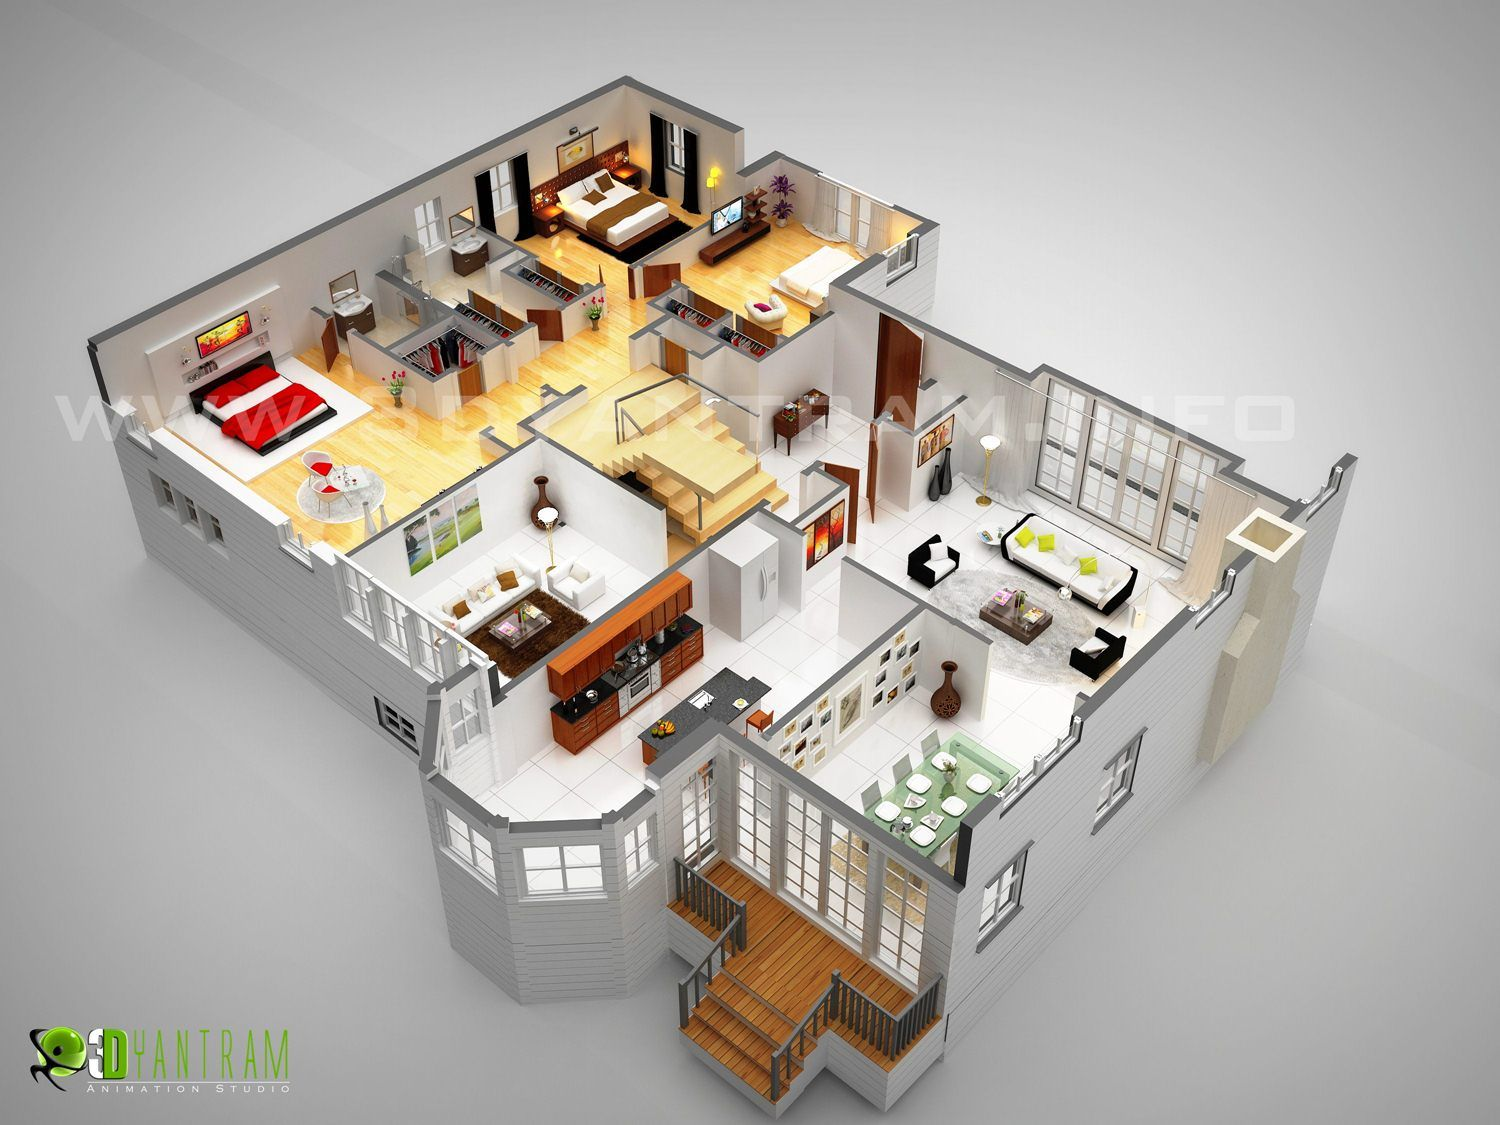 Laxurious residential 3d floor plan paris sims for Home design 3d 5 0 crack